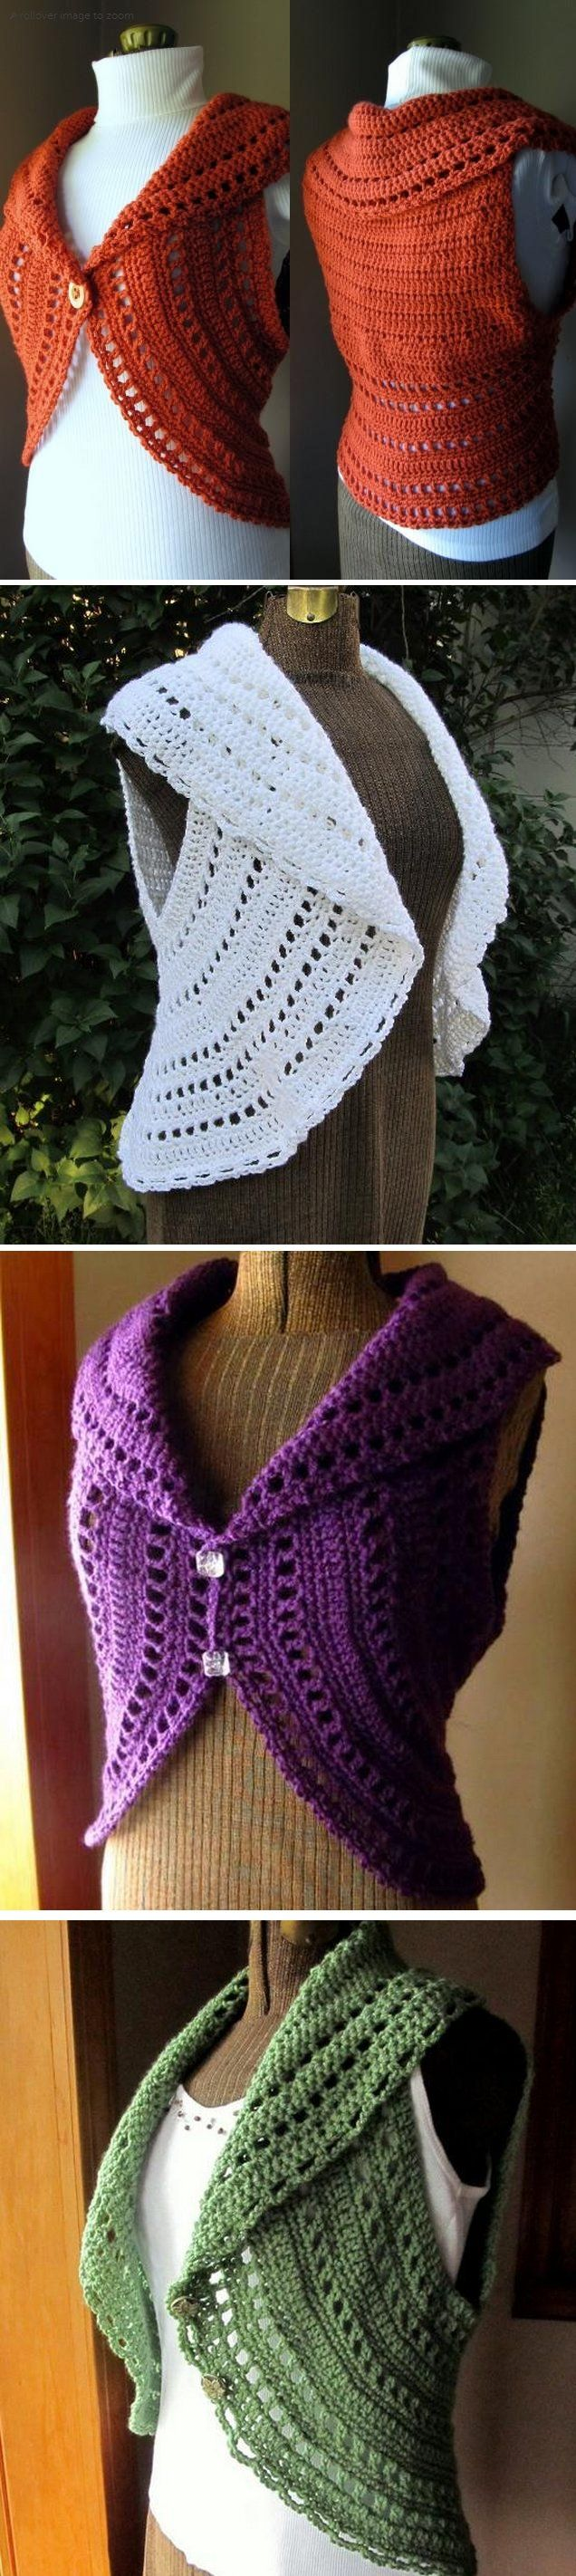 Crochet Ladies Circle Vest or Shrug Pattern